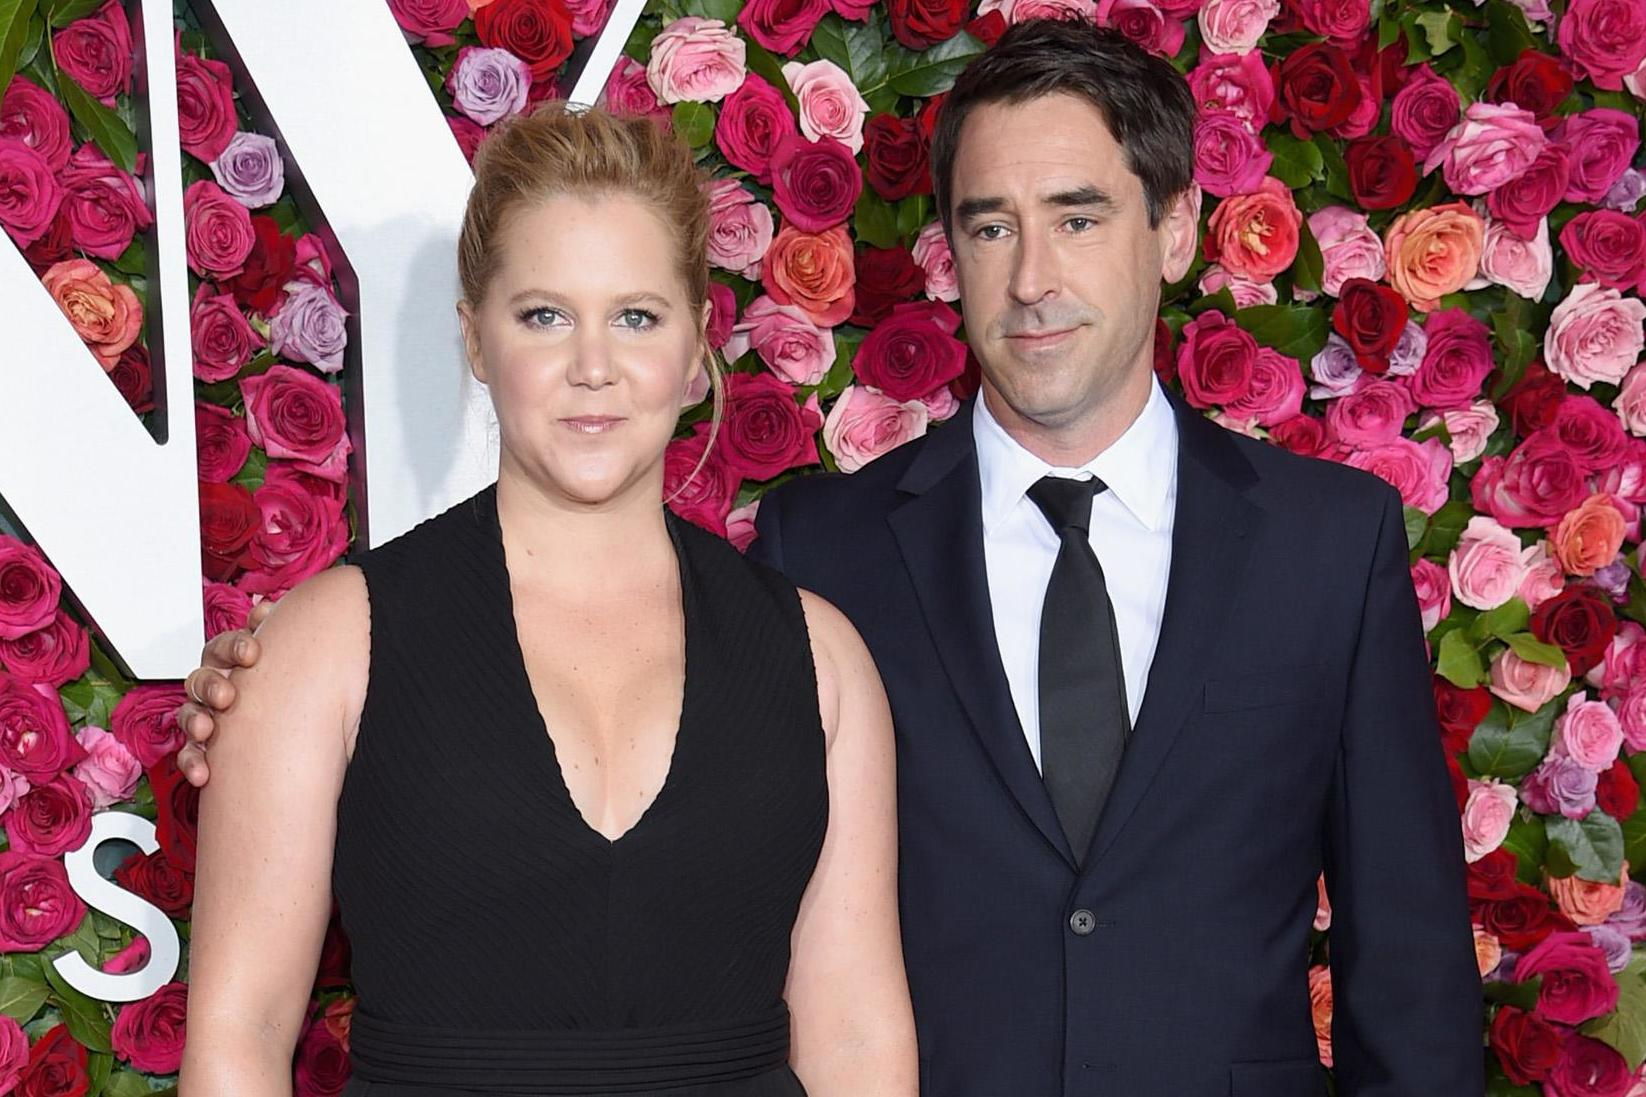 What is autism spectrum disorder? Amy Schumer speaks about husband's diagnosis